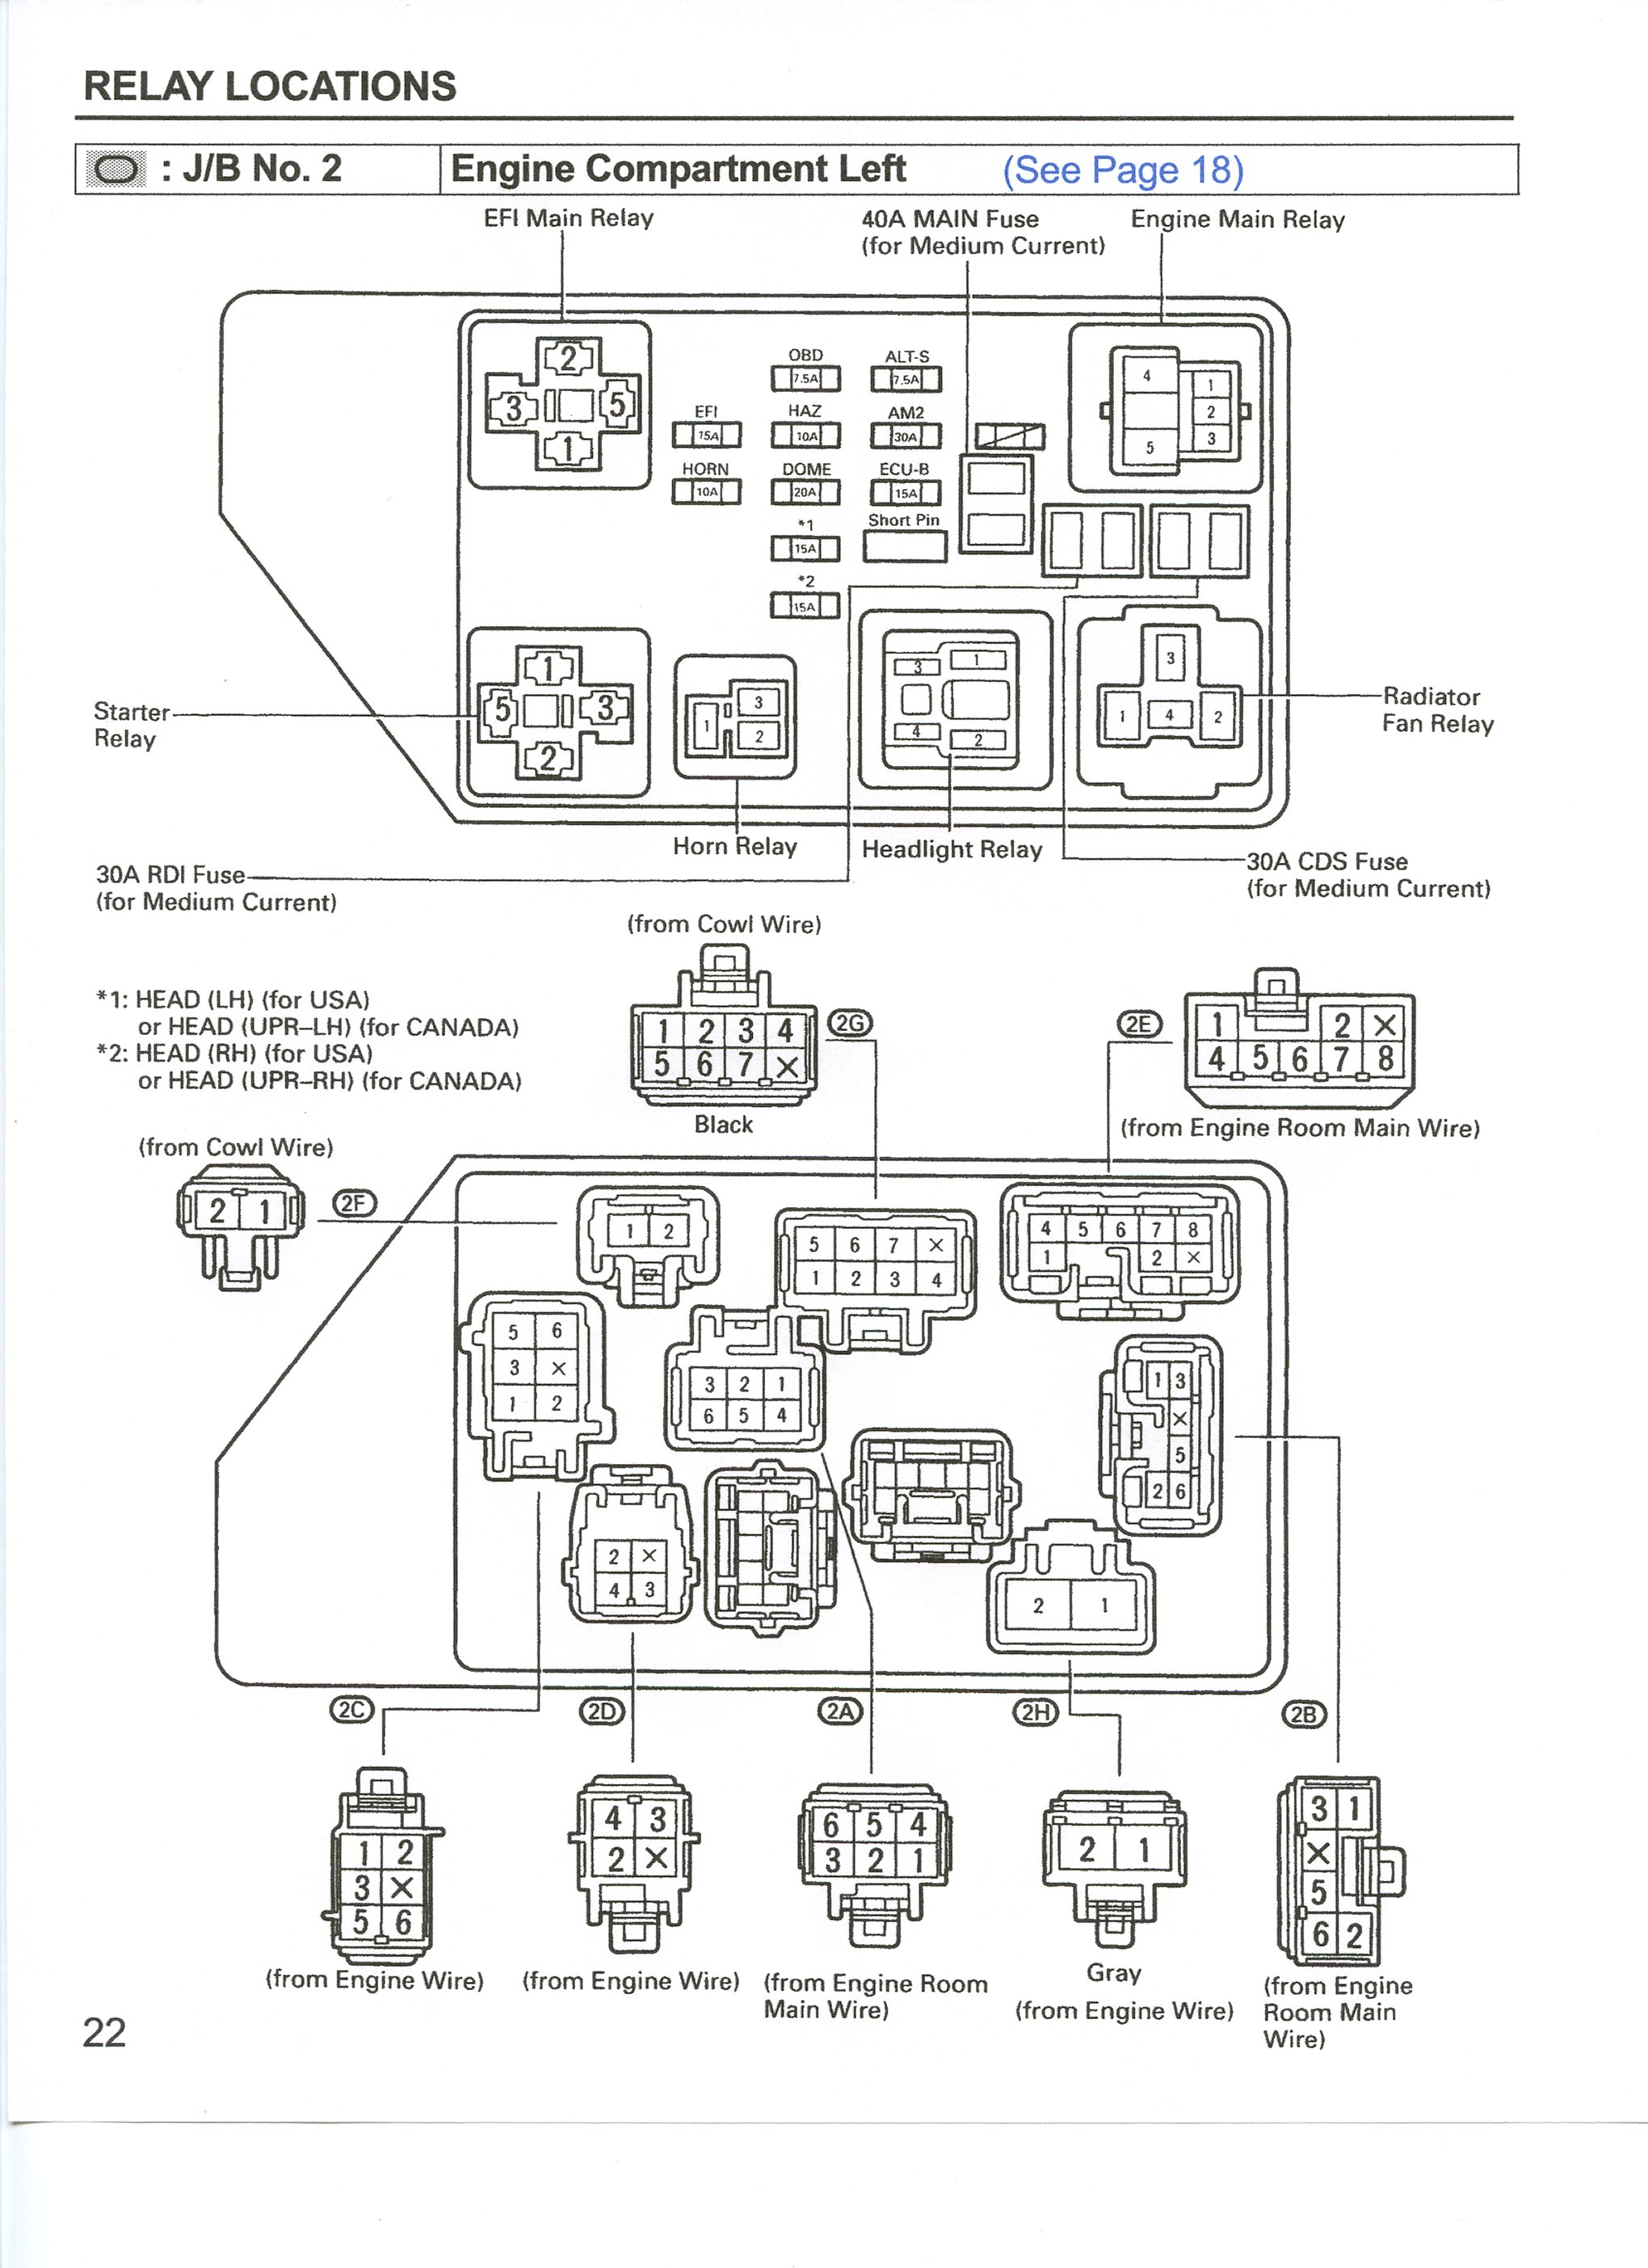 1990 toyota celica fuse box diagram OCNIlgW toyota prius fuse box toyota matrix fuse box \u2022 free wiring 2012 toyota highlander fuse box diagram at gsmportal.co